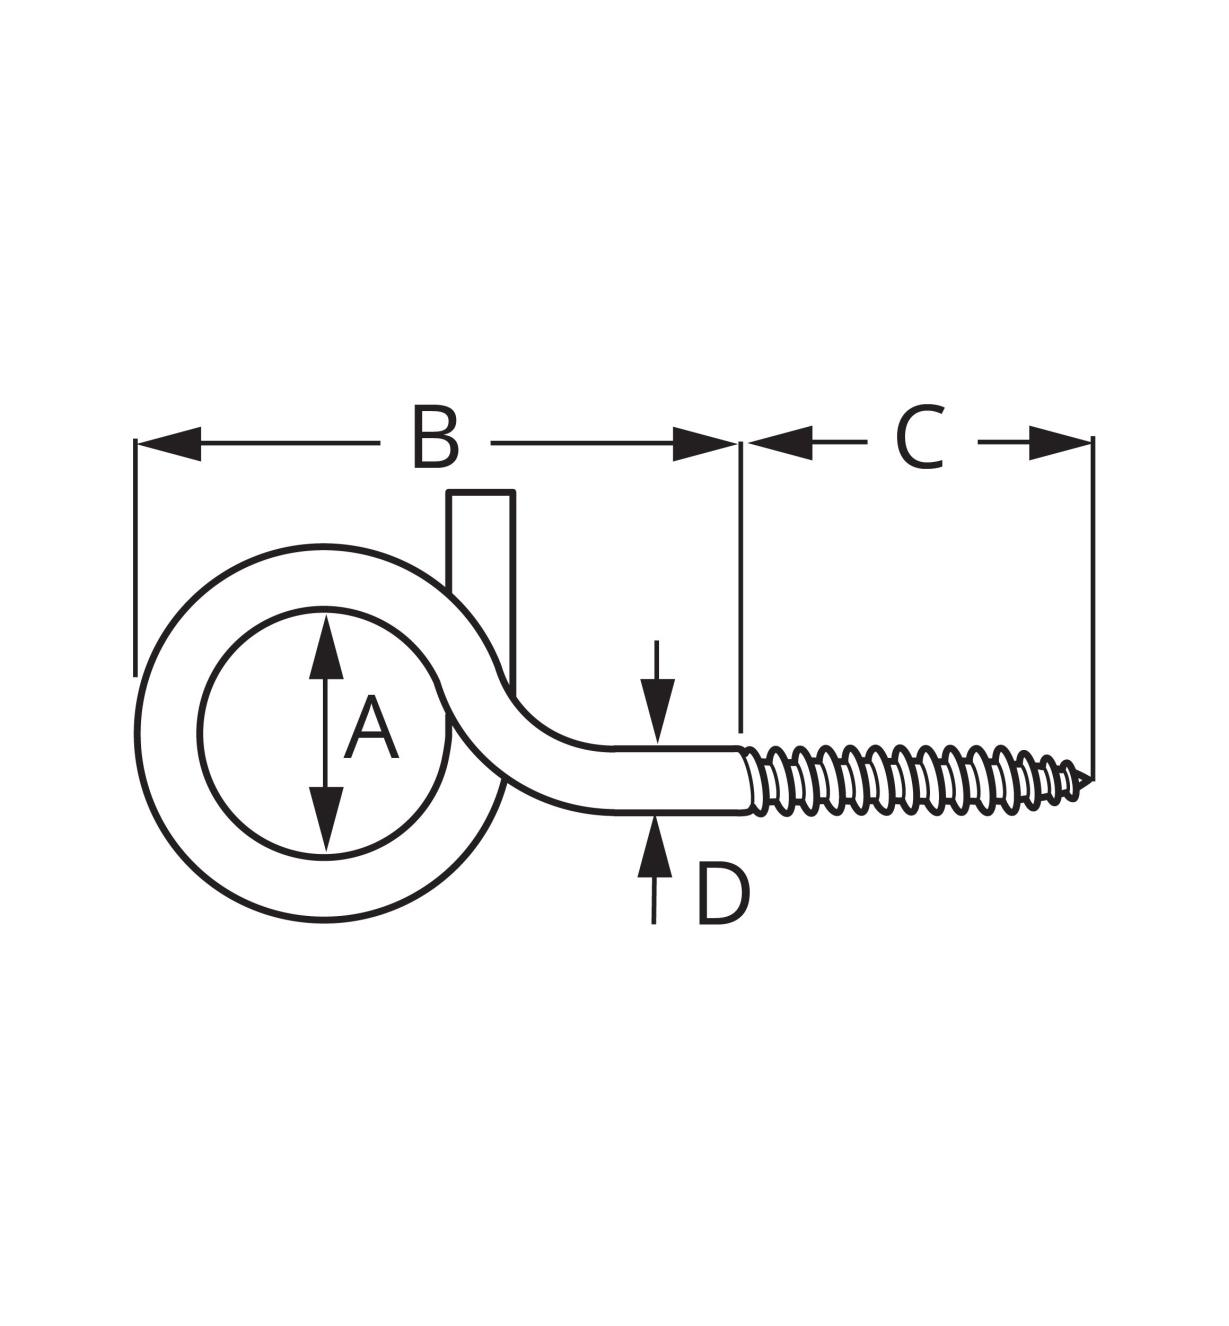 Diagram indicating A is loop diameter, B is loop length, C is thread length and D is thickness of stainless steel wire